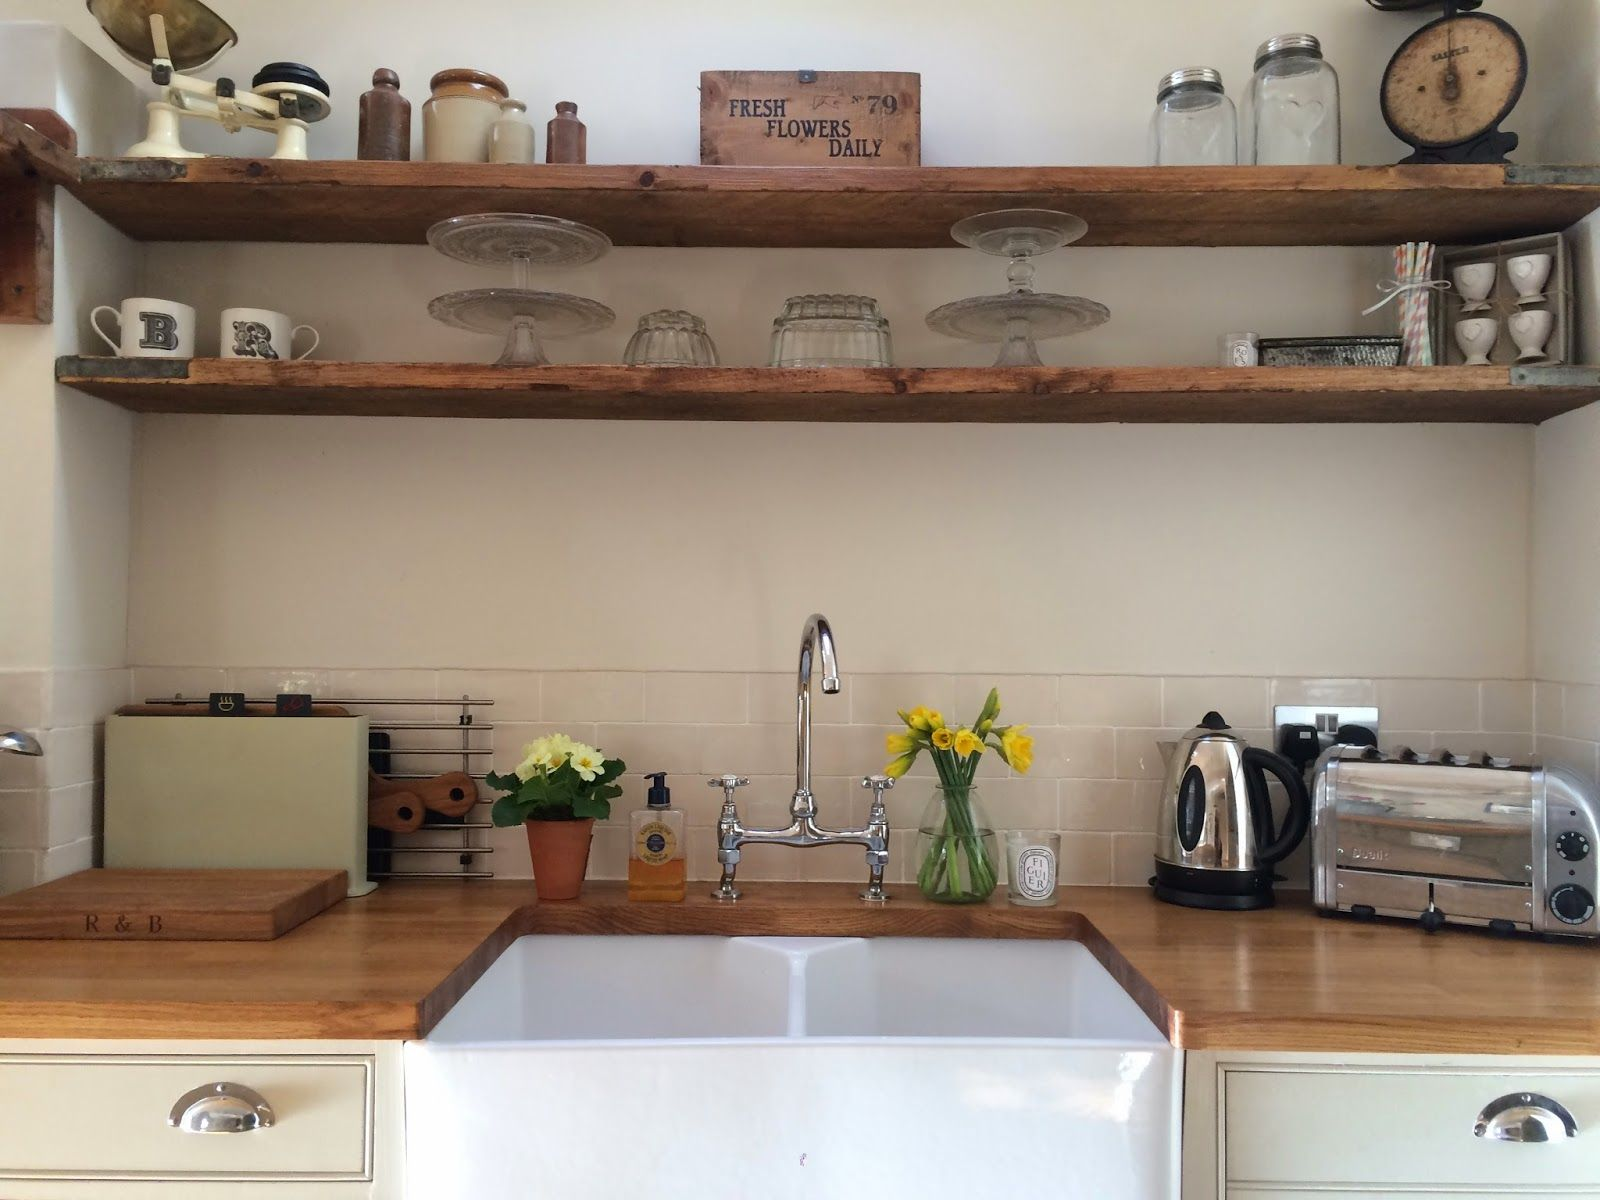 country shelves for kitchen spotlights roses and rolltops makeover scaffold board